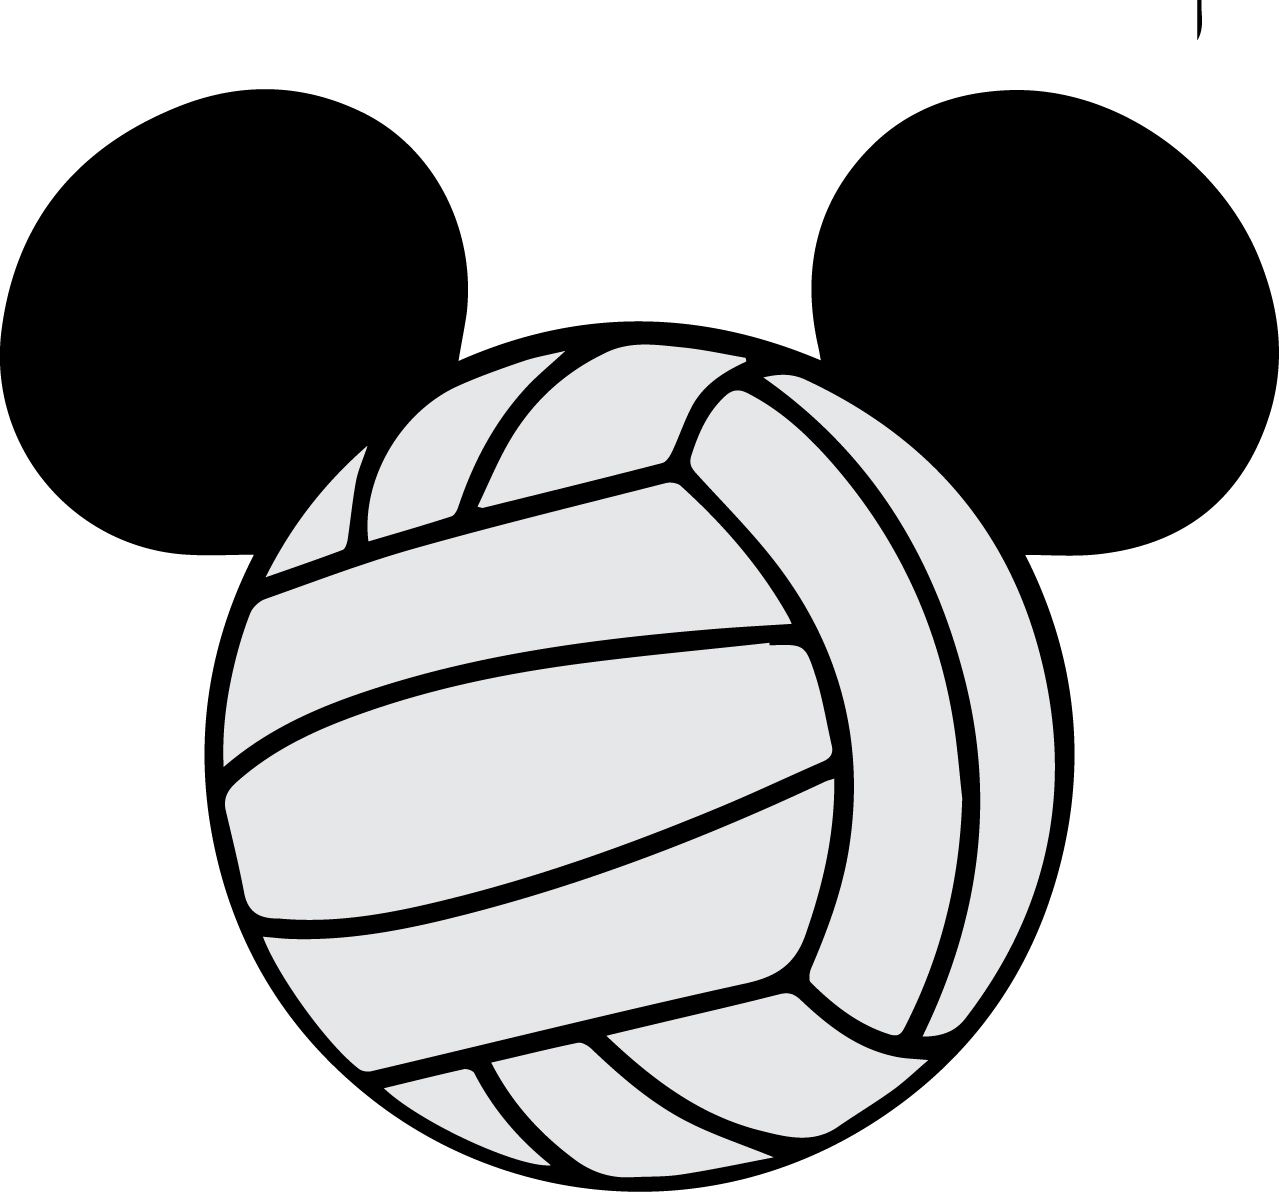 Mickey Head Volleyball Visit Svgcoopcom To Download This Svg Circuit Board Tshirt Zazzle For Free